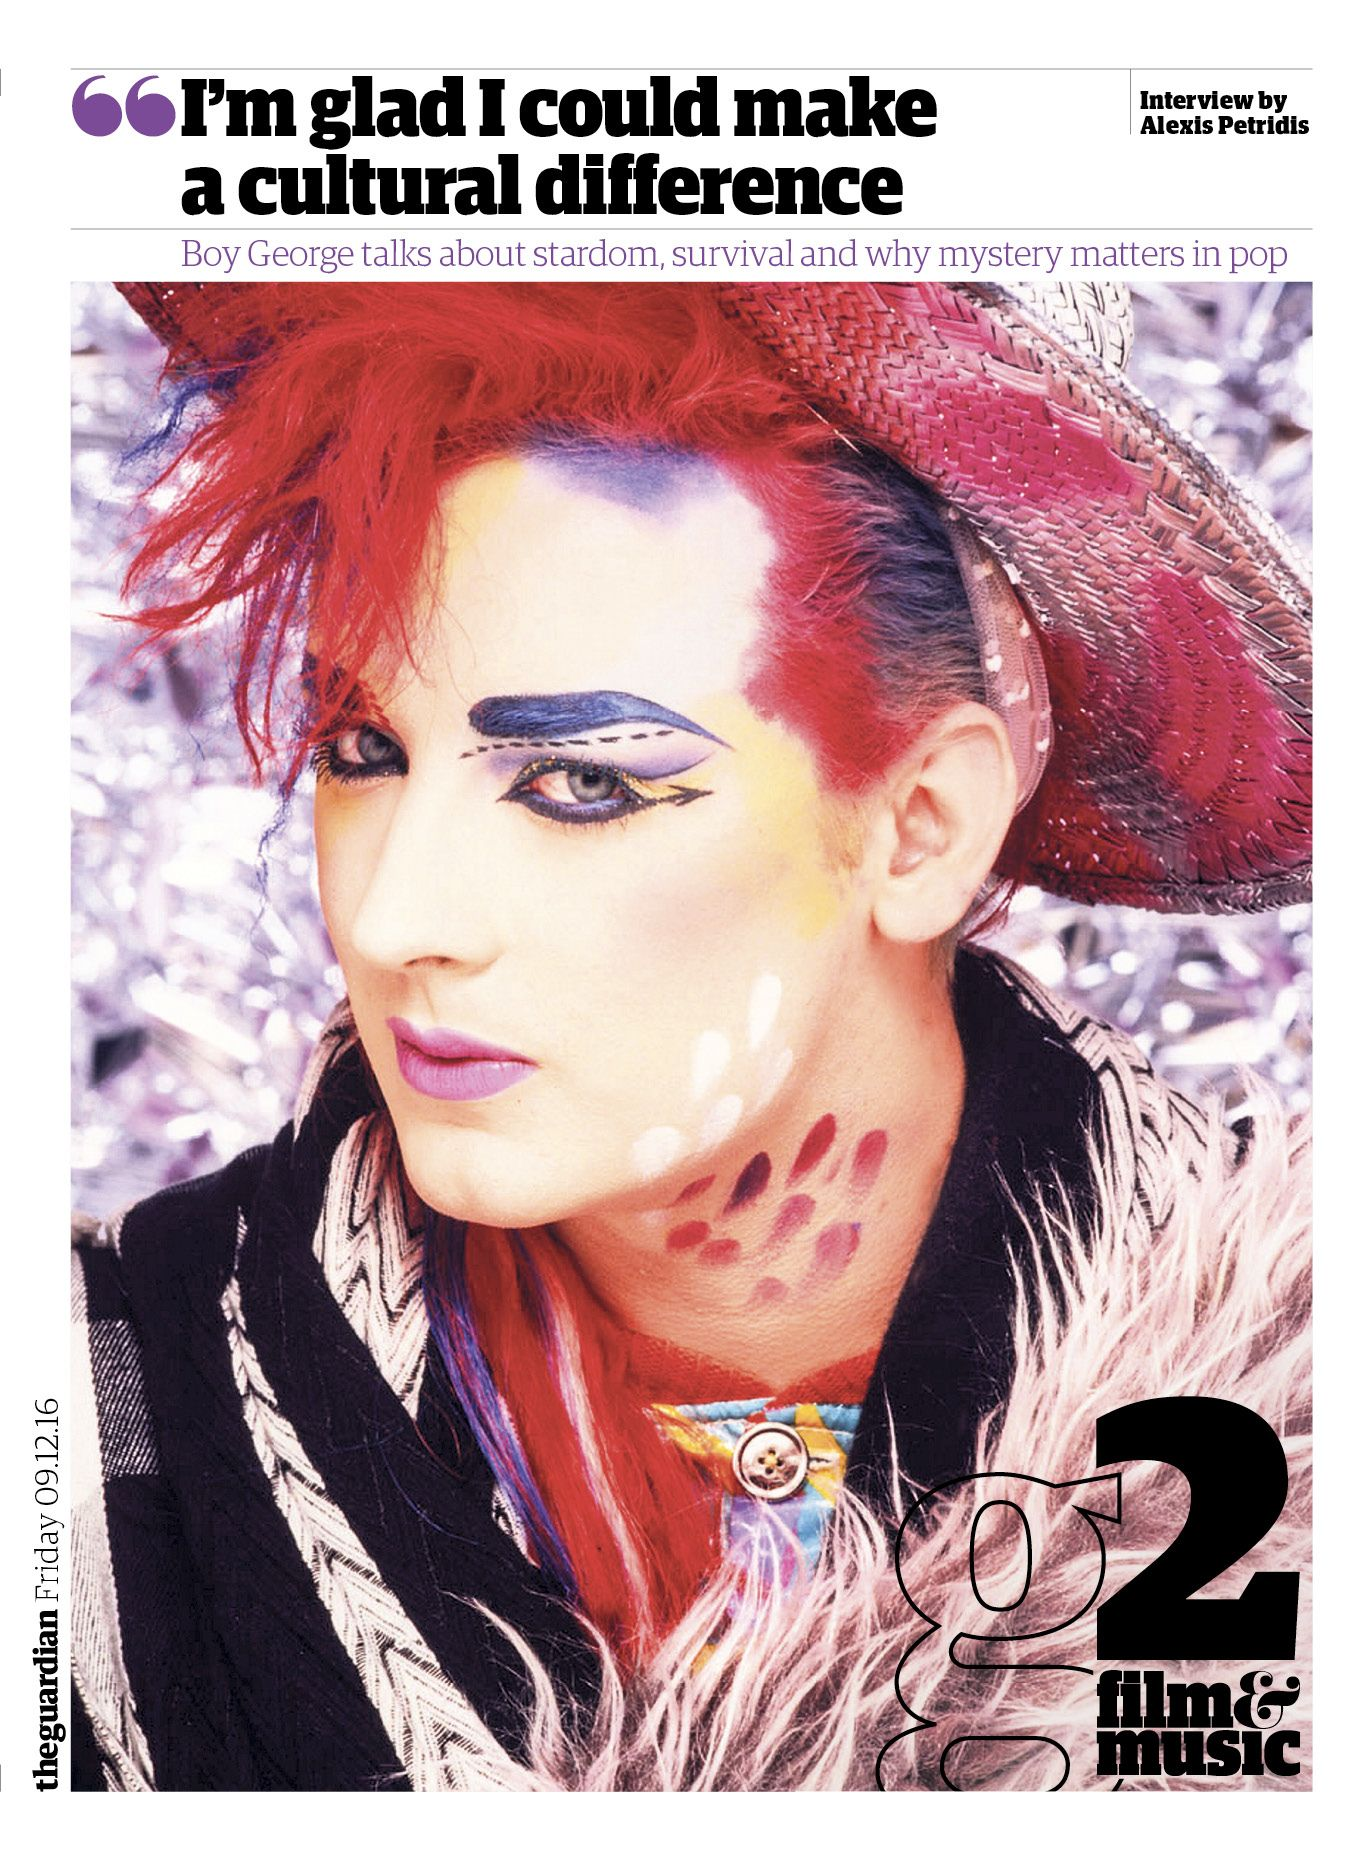 #editorialdesign #newspaperdesign #graphicdesign #design #theguardian Guardian g2 cover #BoyGeorge